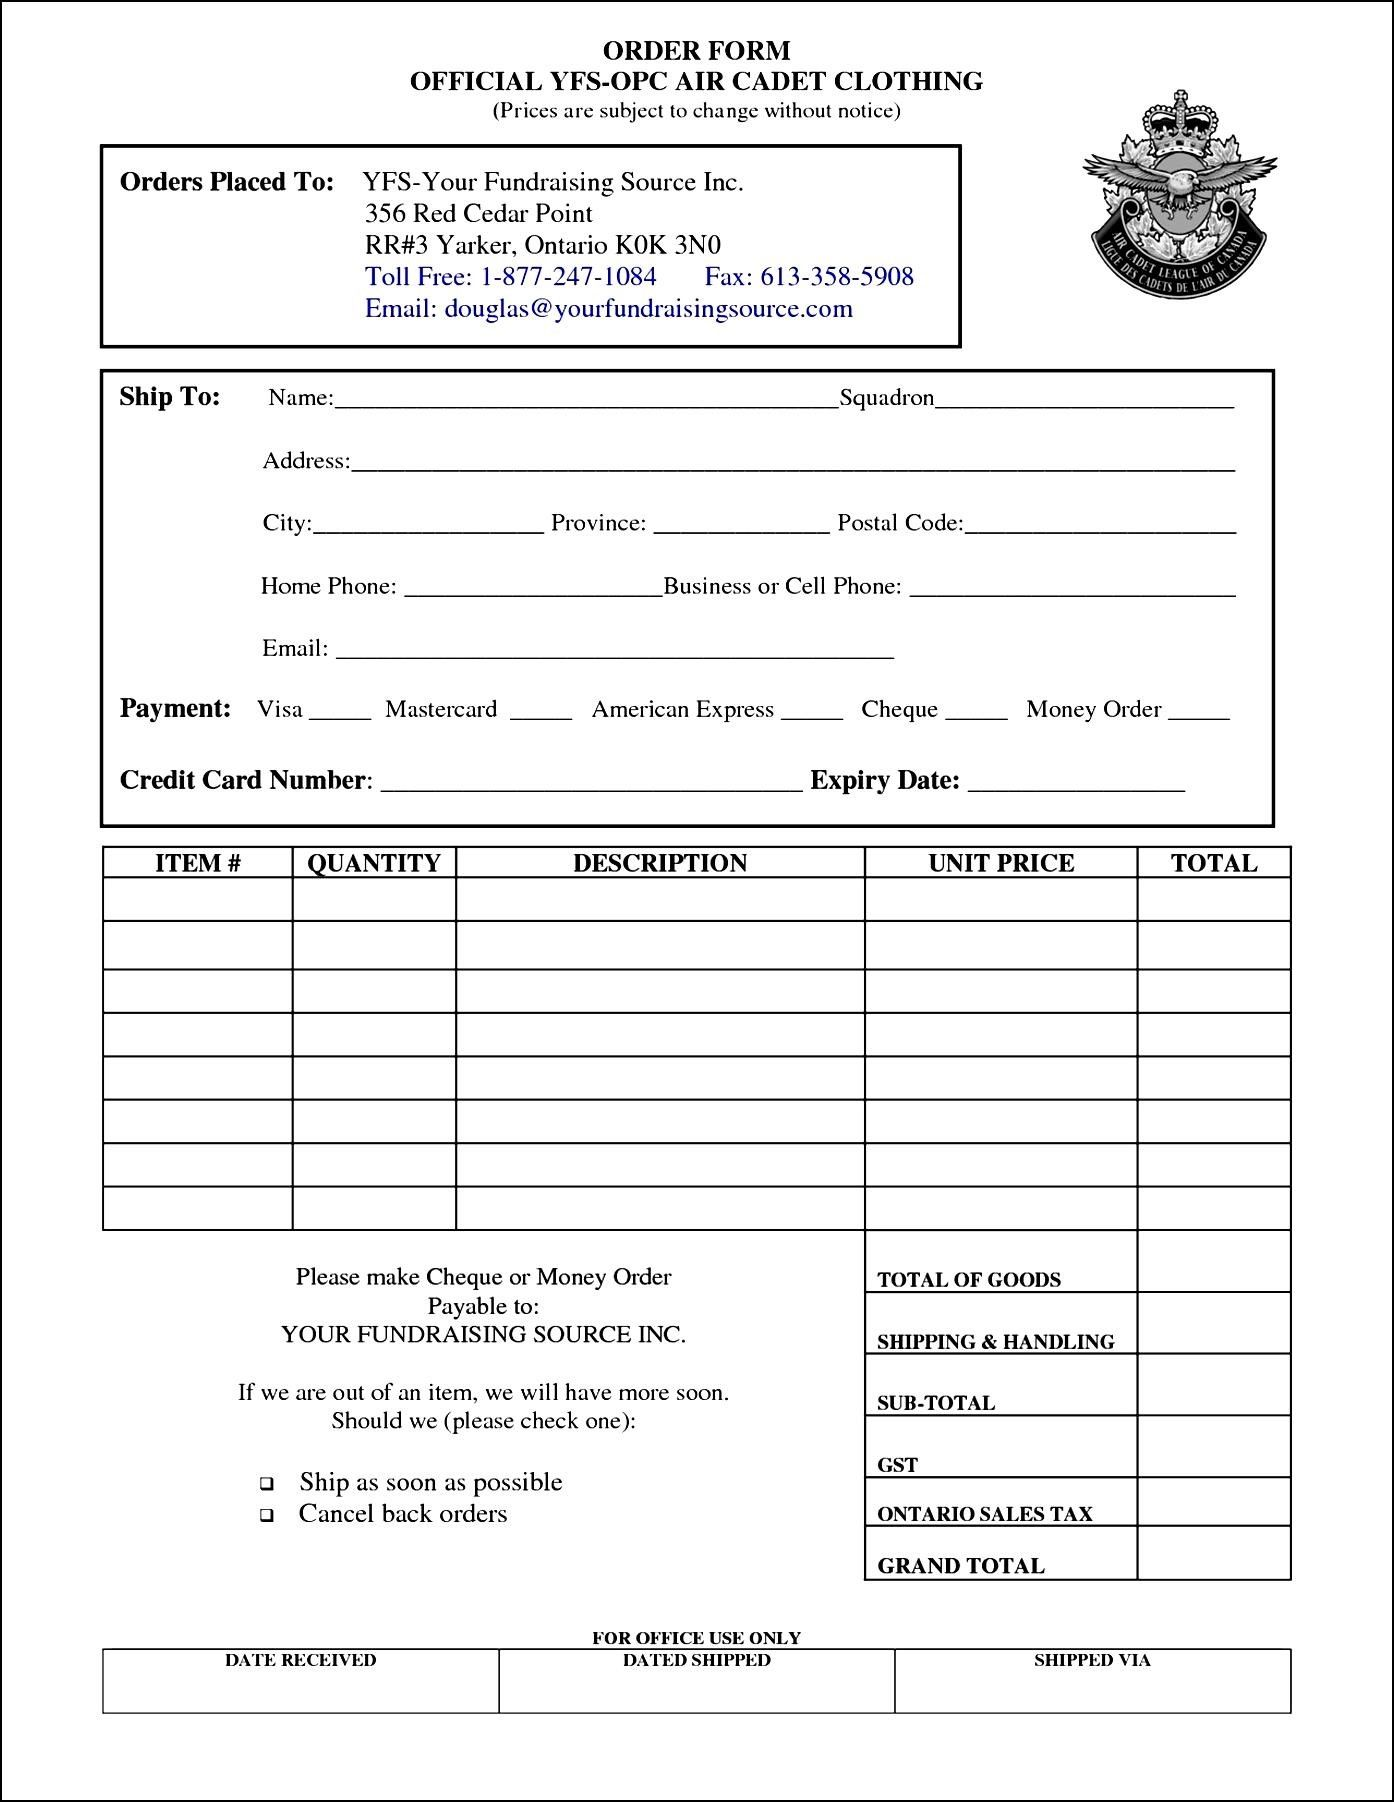 Clothing Order Form Template Free Besttemplates Sample Order - Free invoice template for word 2010 dress stores online